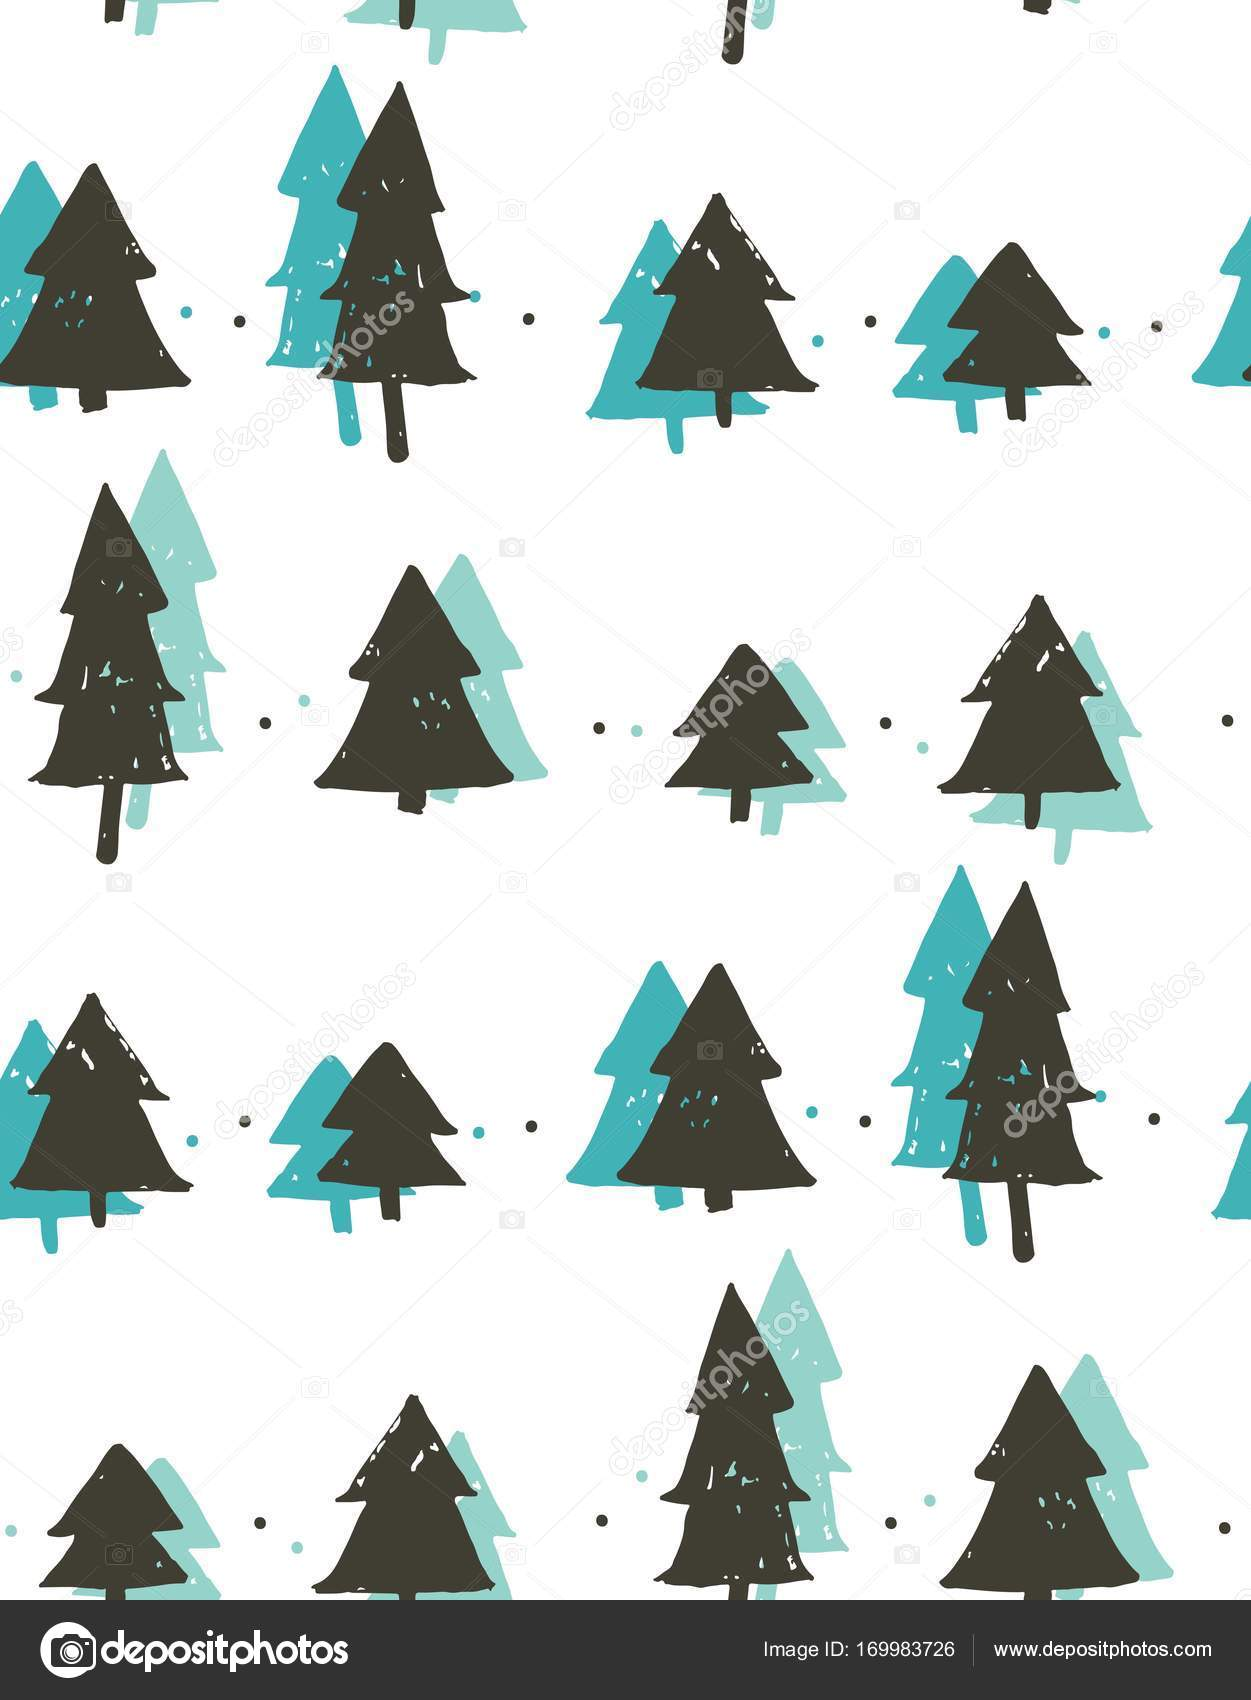 Hand Drawn Vector Abstract Fun Merry Christmas Time Cartoon Freehand Illustration Seamless Pattern With Vintage Retro Christmas Trees Forest Isolated On White Background Stock Vector C Helter Skelter Nastya Yandex Ru 169983726 Tree cartoon christmas stock vectors, clipart and illustrations. depositphotos